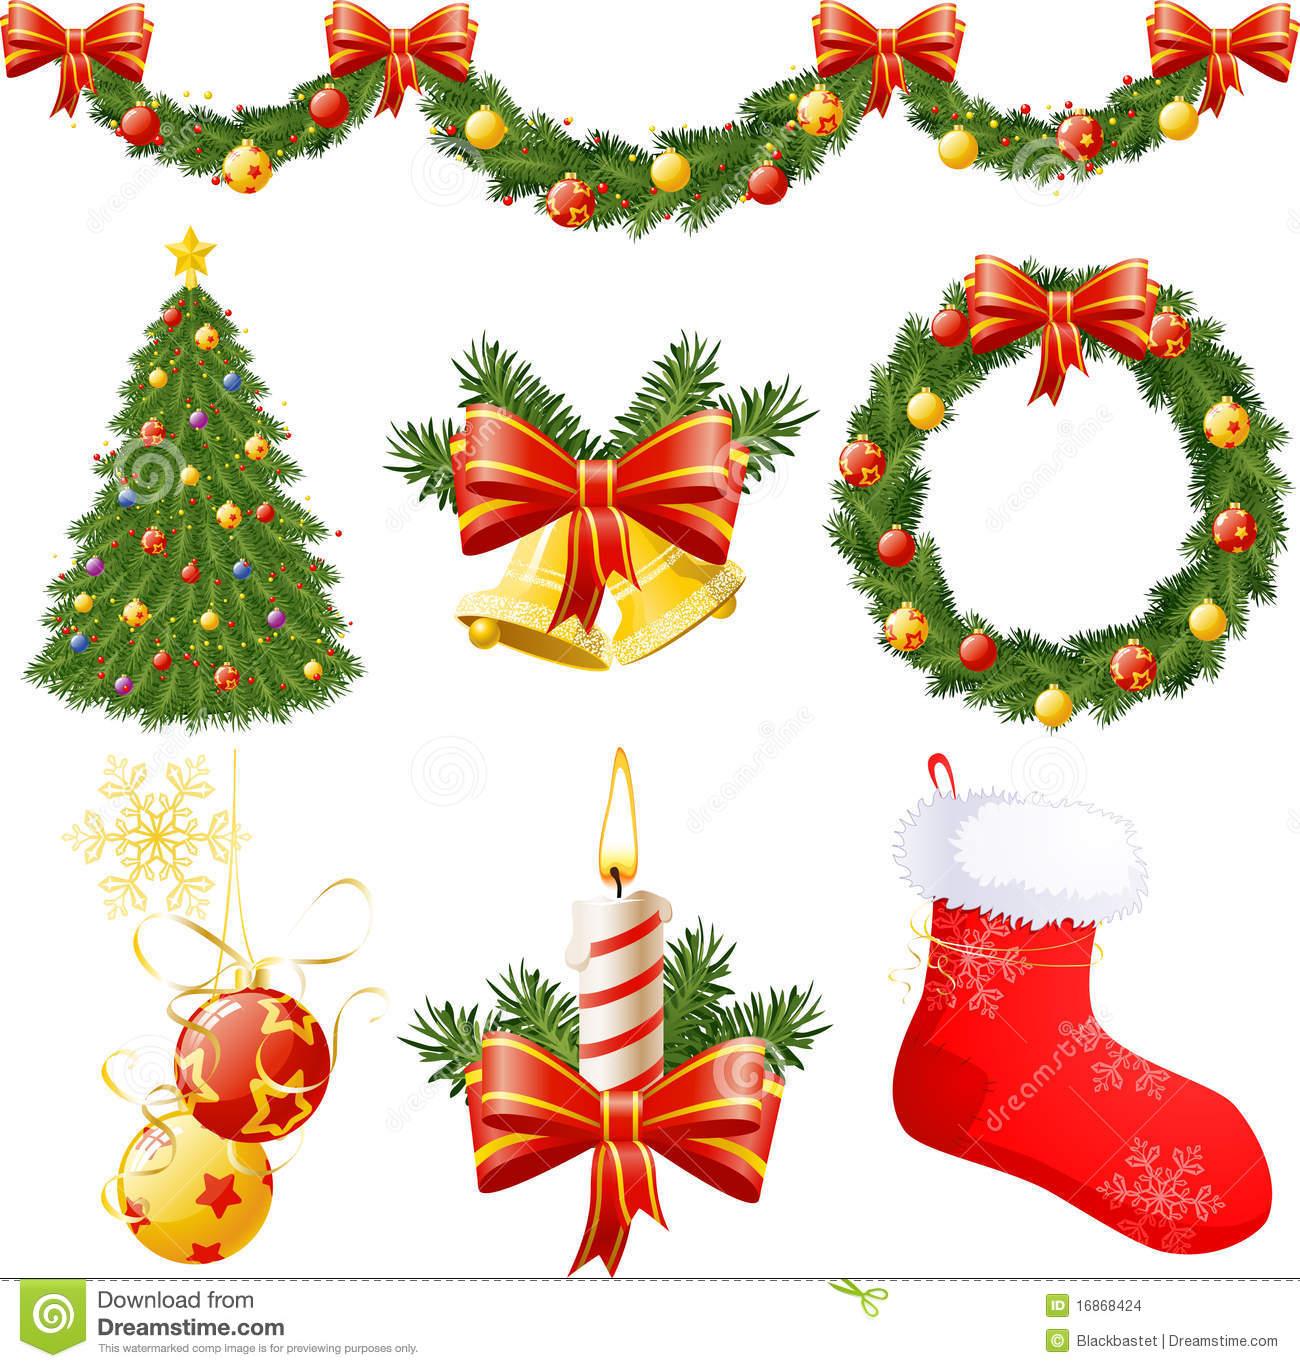 Christmas decorations stock images image 16868424 for Decoration images